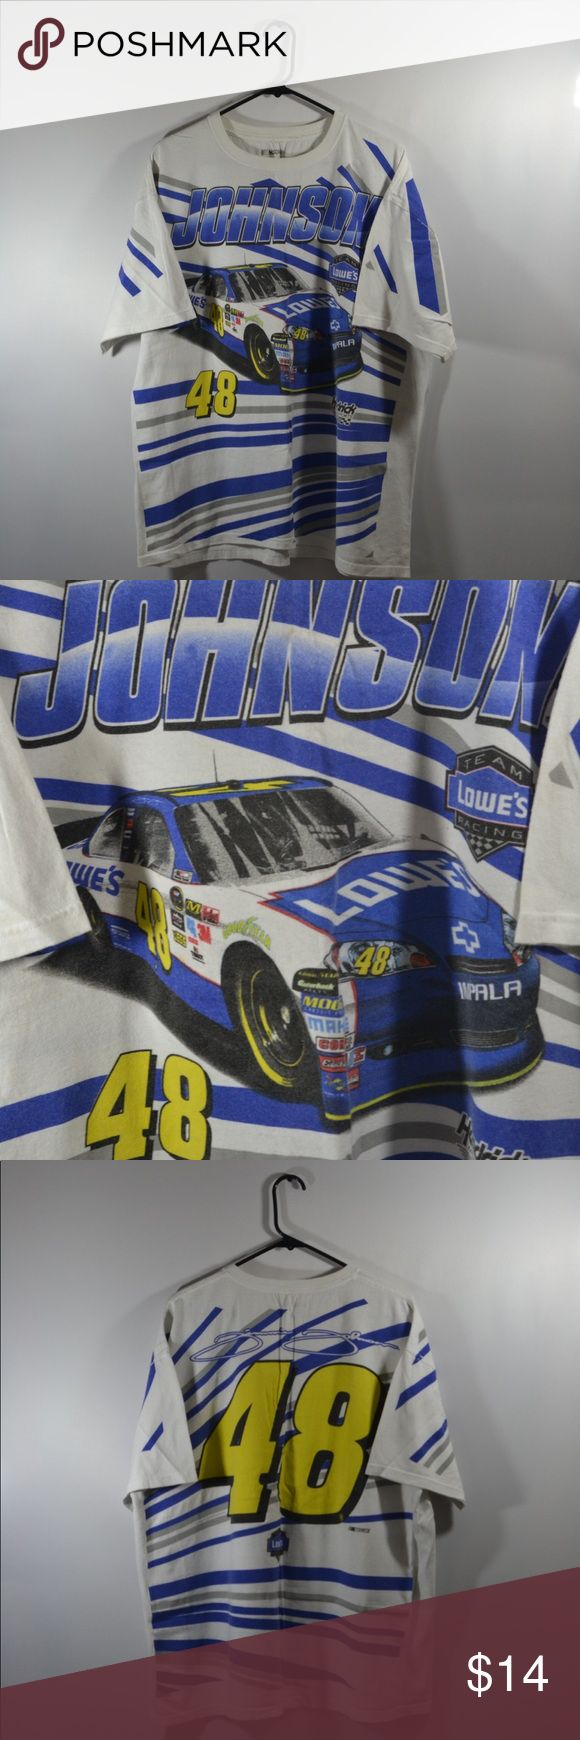 """NASCAR Jimmy Johnson #48 T Shirt NASCAR Jimmy Johnson #48 T Shirt, The shirt is faded from age. Measured in inches with t shirt laid flat. Chest:26"""",Length:28"""",Sleeve:8.5"""" Nascar Shirts Tees - Short Sleeve"""